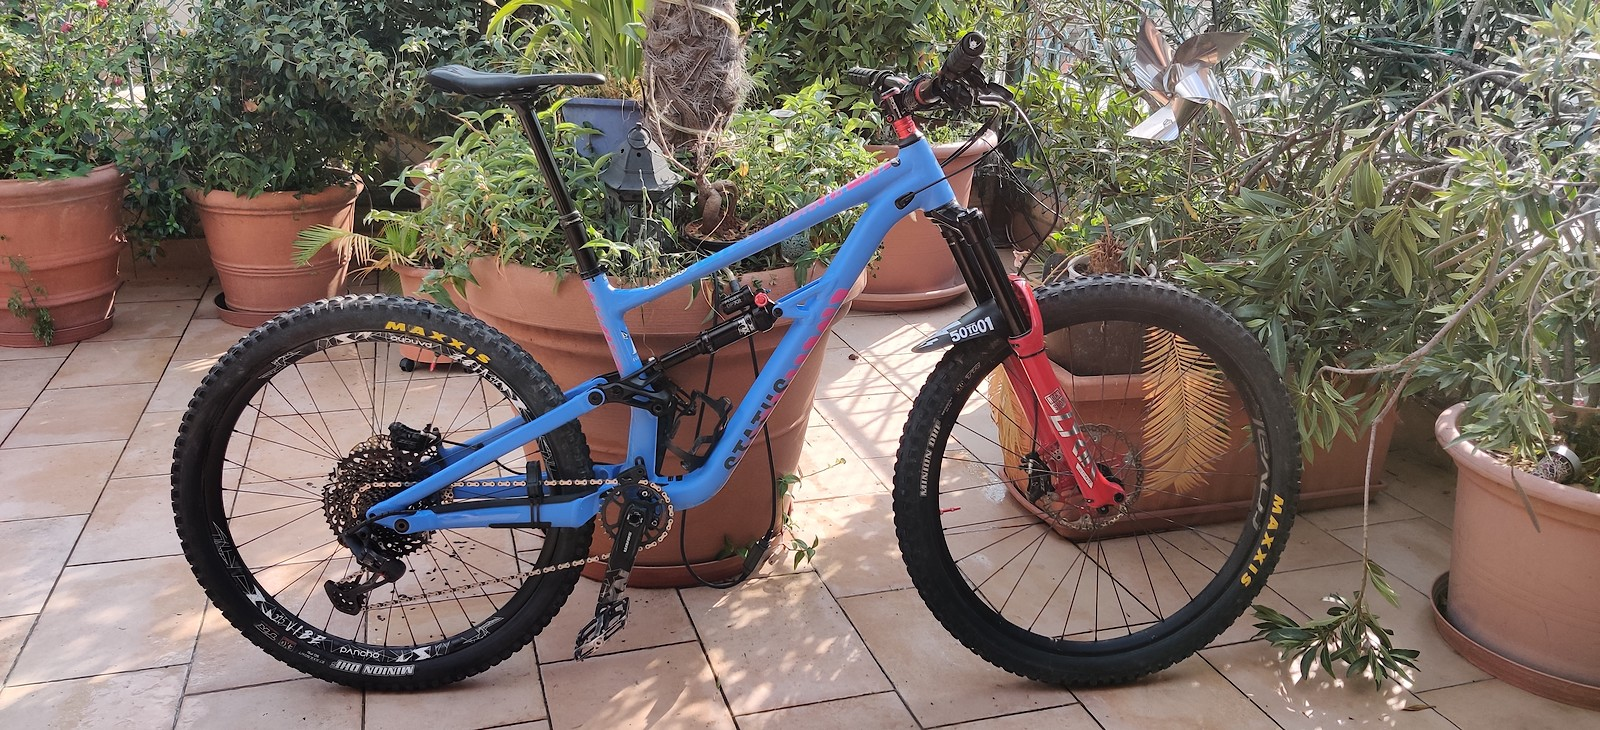 Specialized Status 160 Alloy Mullet